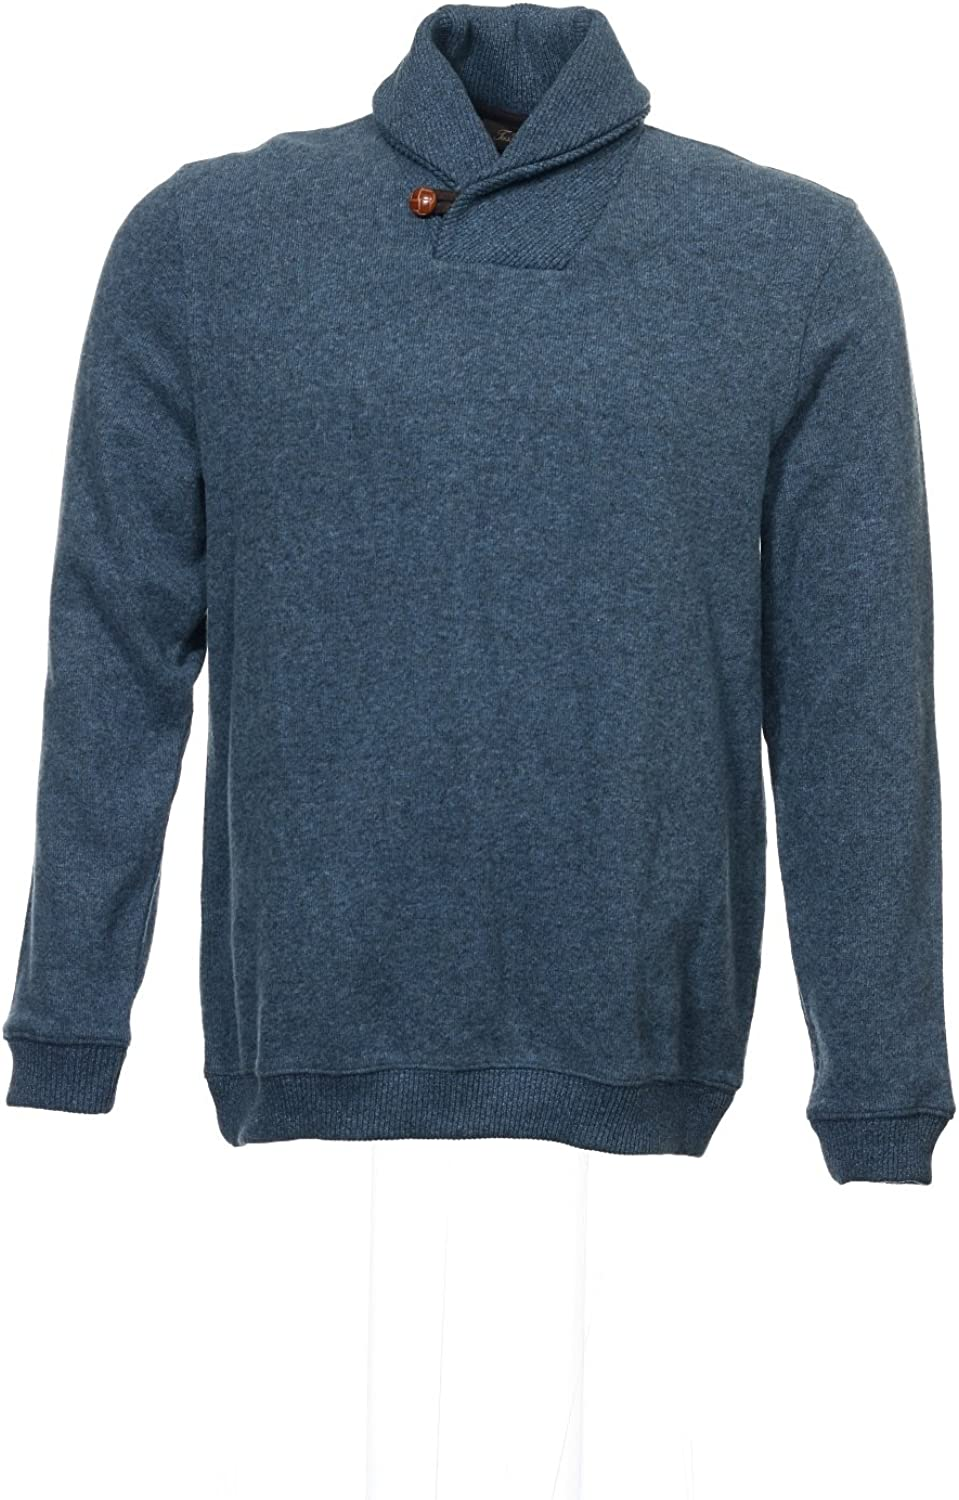 Tasso Elba Mens Blue Heather Shawl Neck Sweater